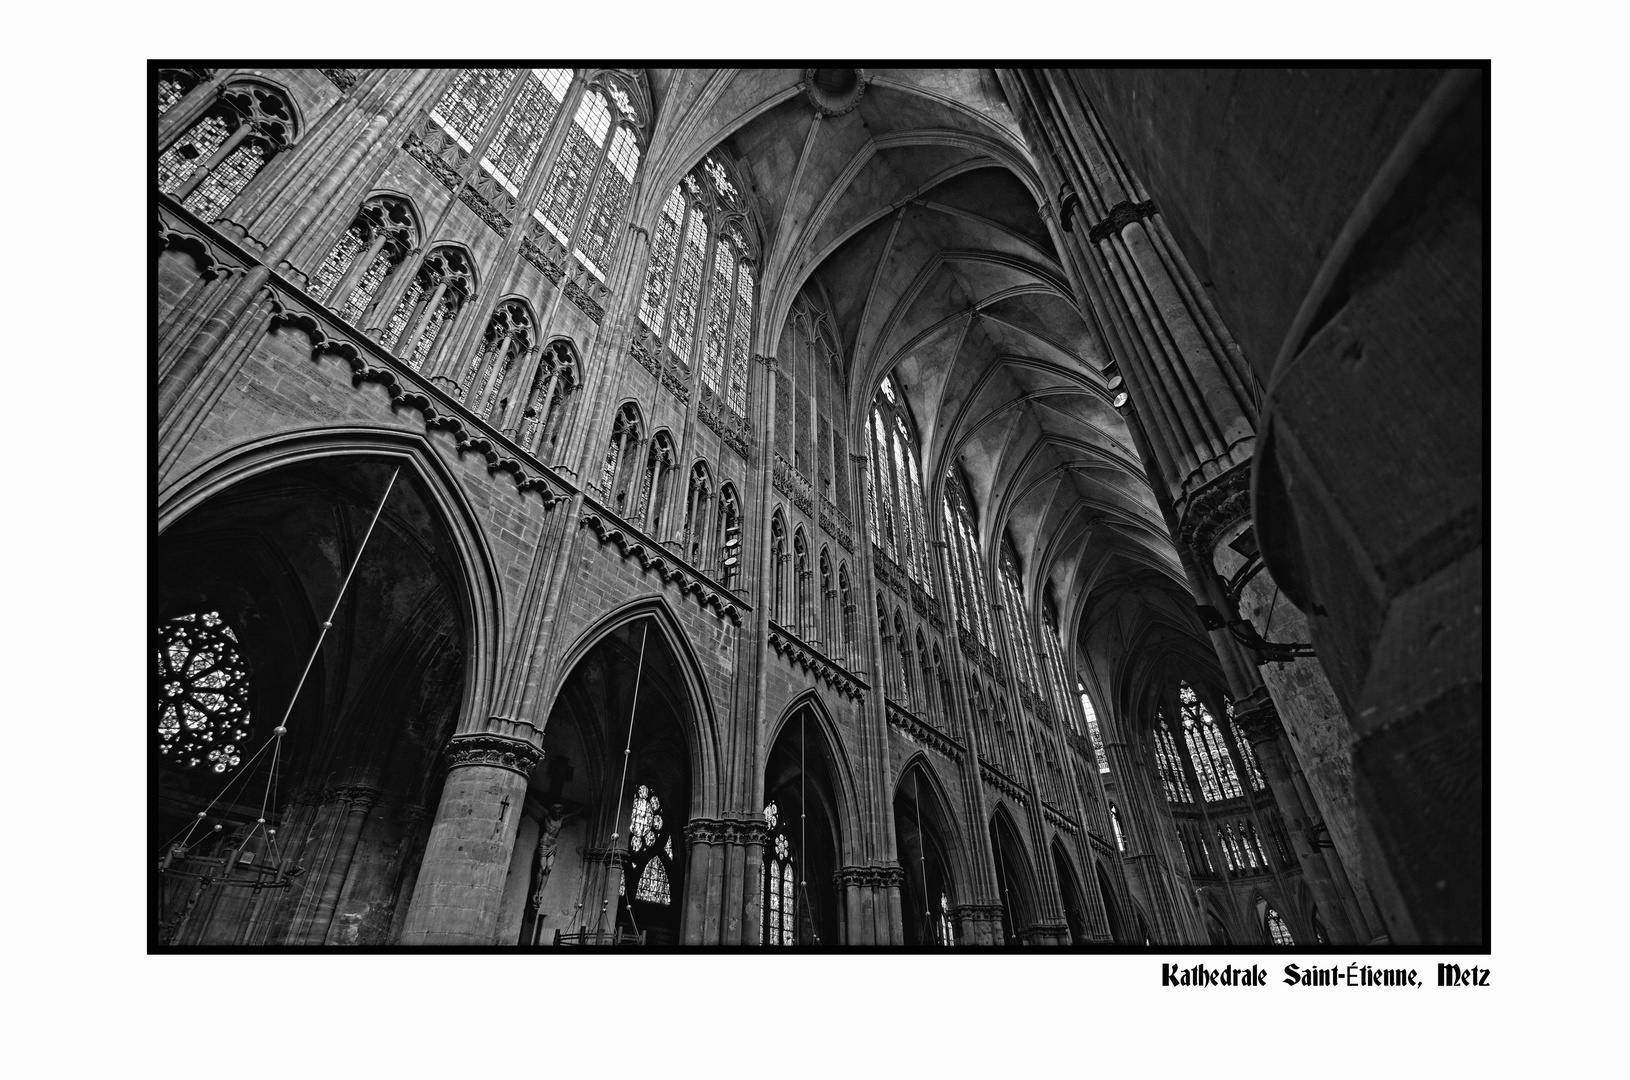 Kathedrale Saint-Étienne in Metz (reloaded)